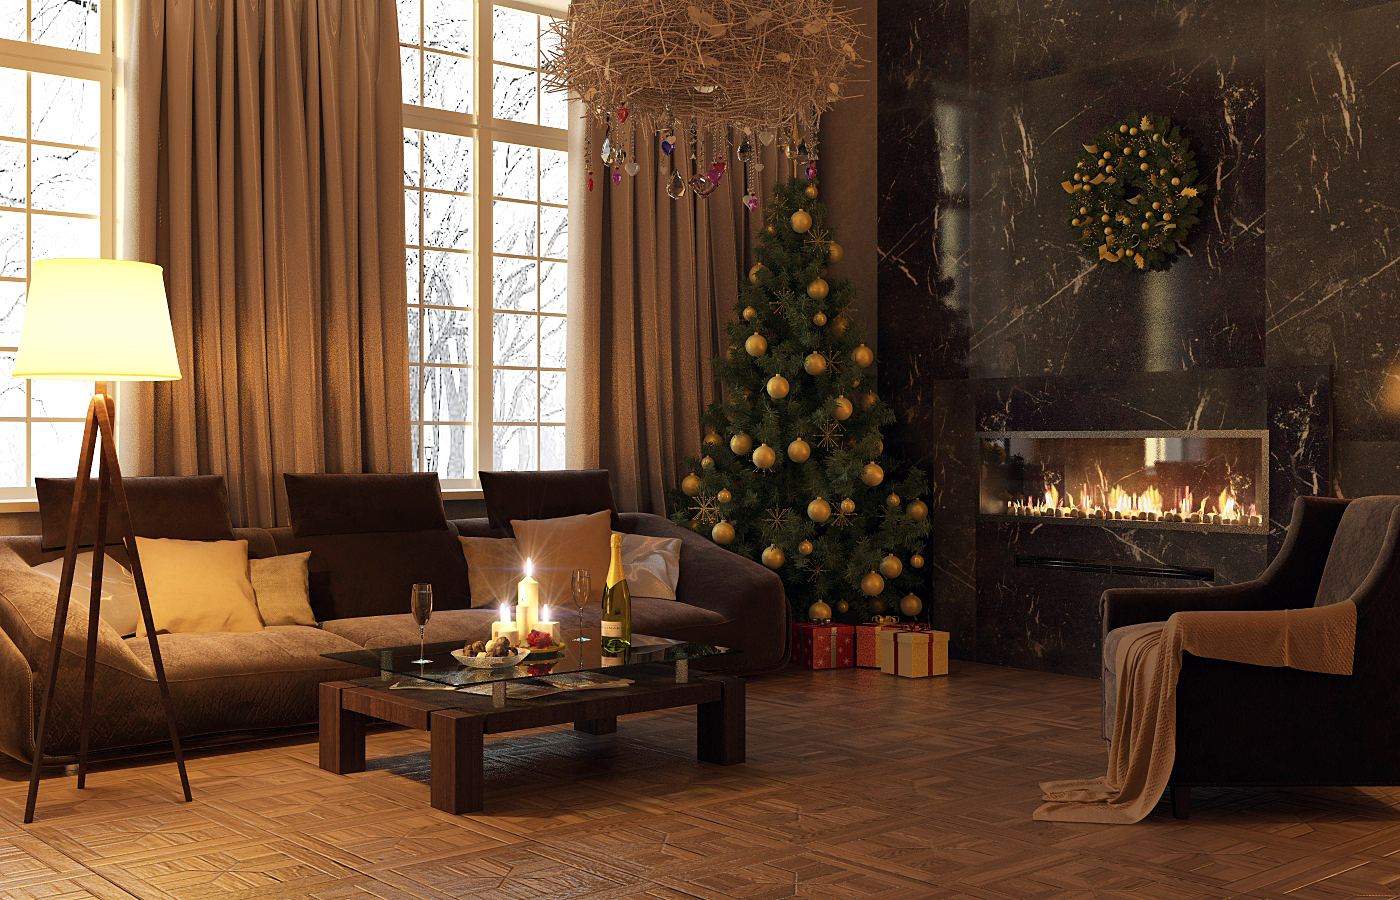 Gorgeous Living Rooms to Get Inspired for your Christmas Decor Christmas decor Gorgeous Living Rooms to Get Inspired for your Christmas Decor Gorgeous Living Rooms to Get Inspired for your Christmas Decor7